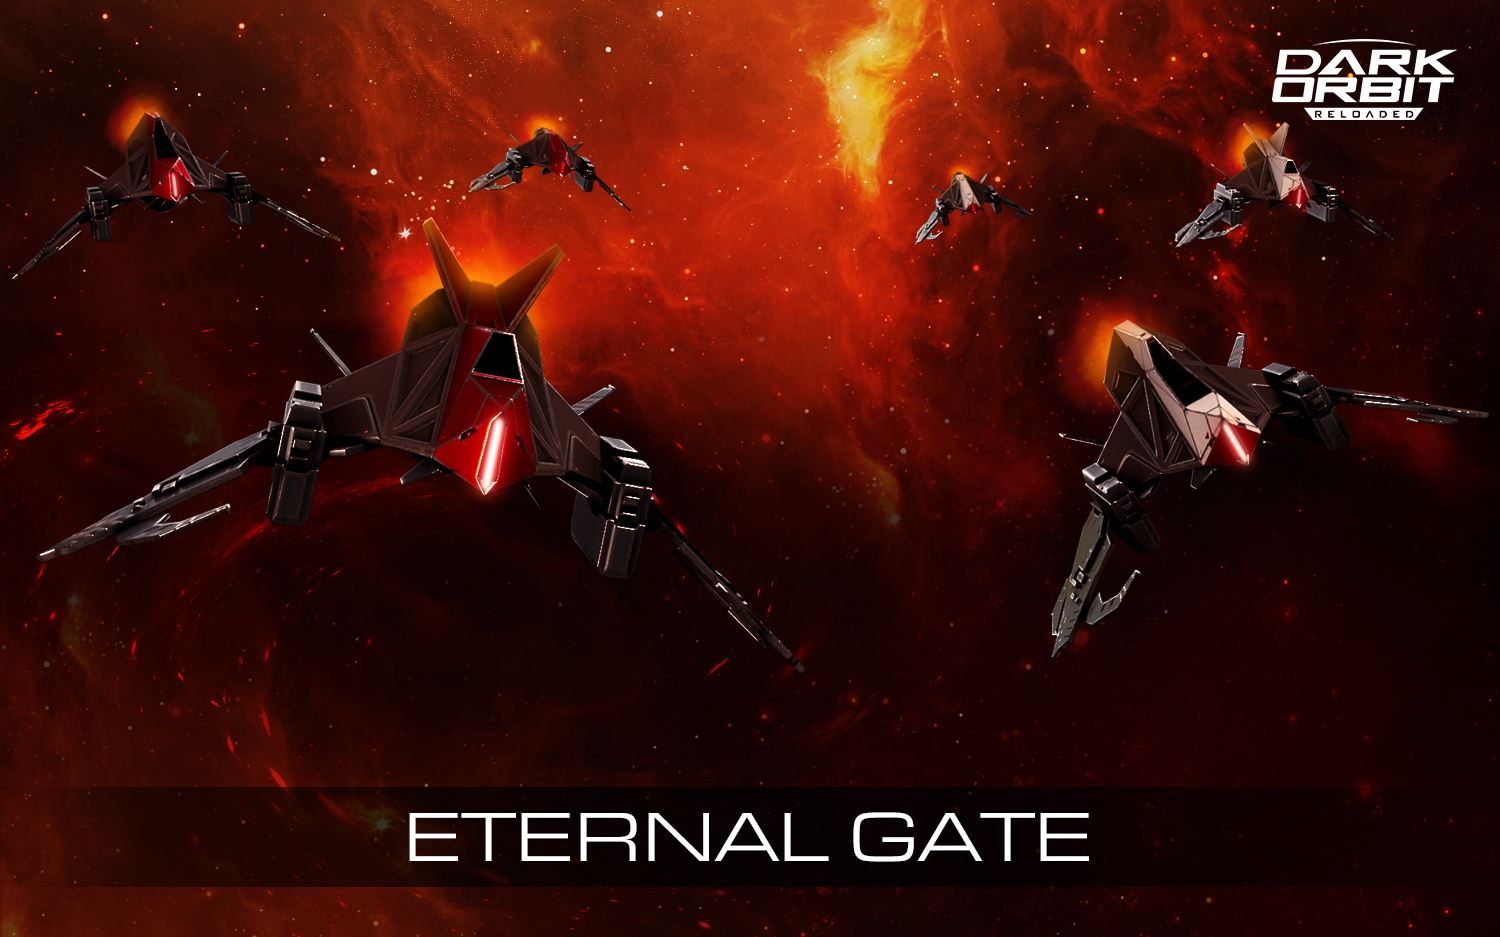 DO_marketing_eternal-gate_202004.jpg